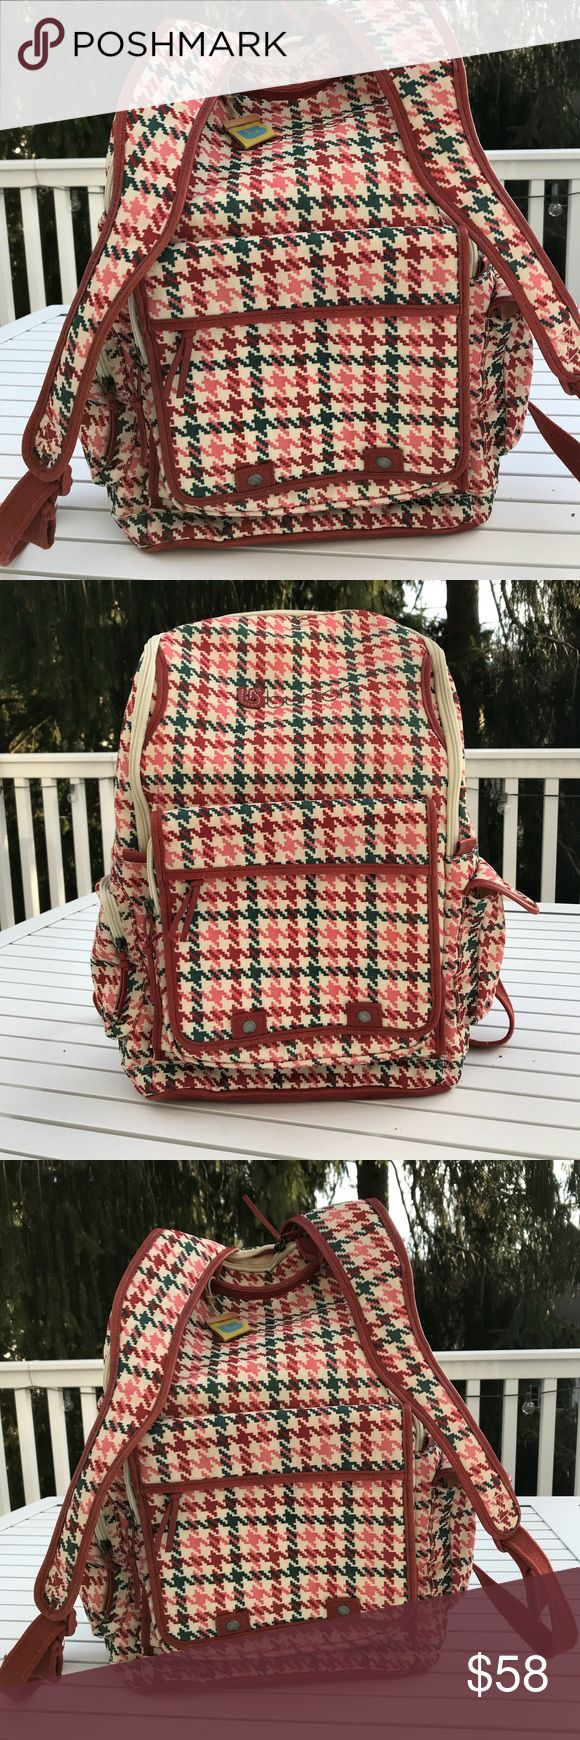 Burton backpack NWT Burton houndstooth print backpack new condition! Never worn/used...great buy!! Burton Bags Backpacks